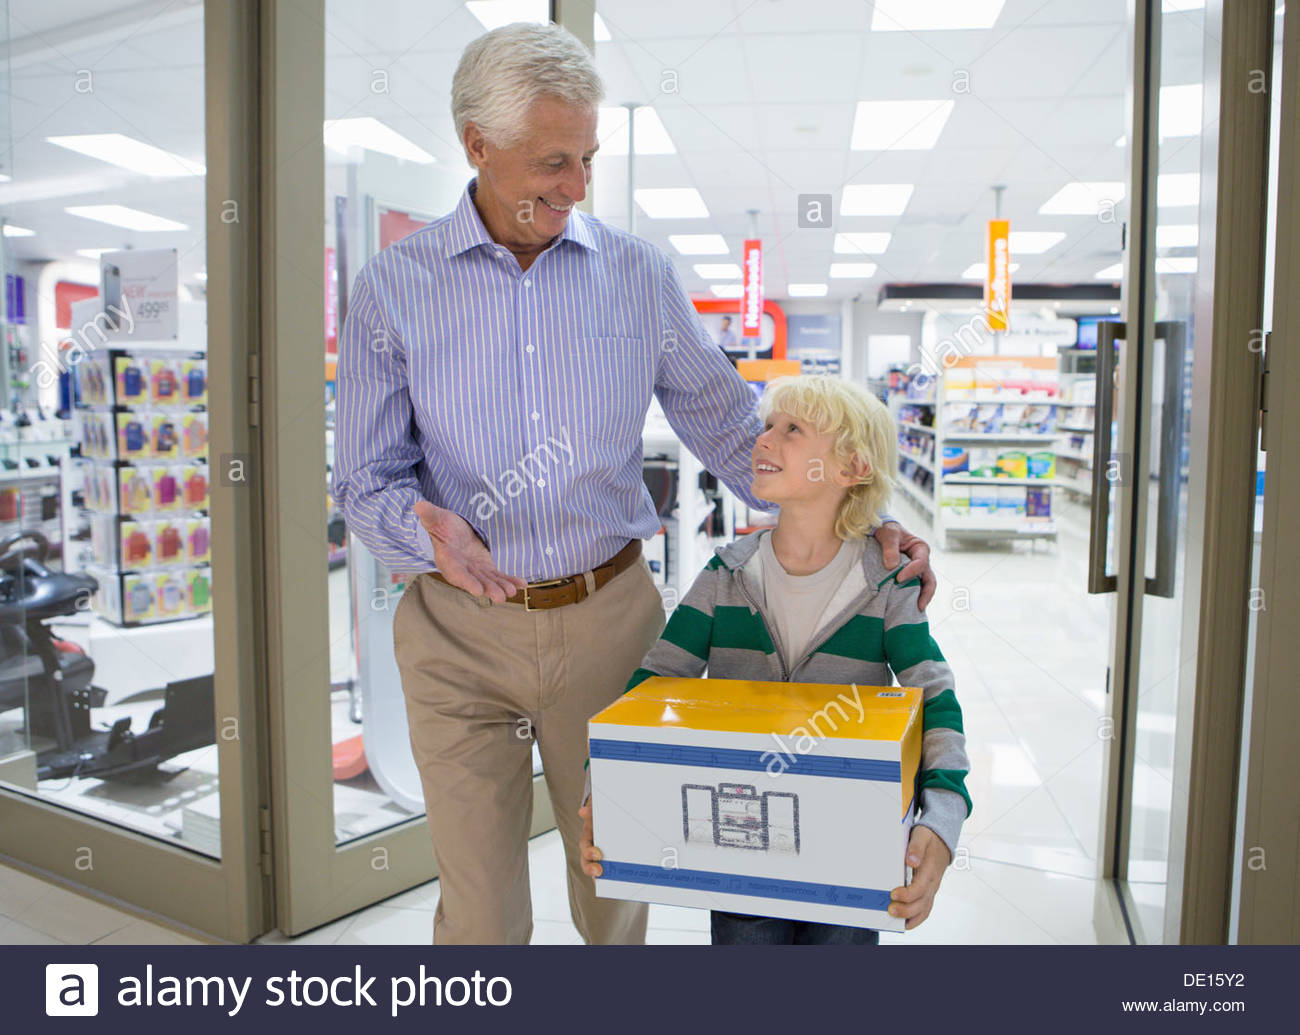 Smiling grandfather and grandson leaving electronics store with box - Stock Image